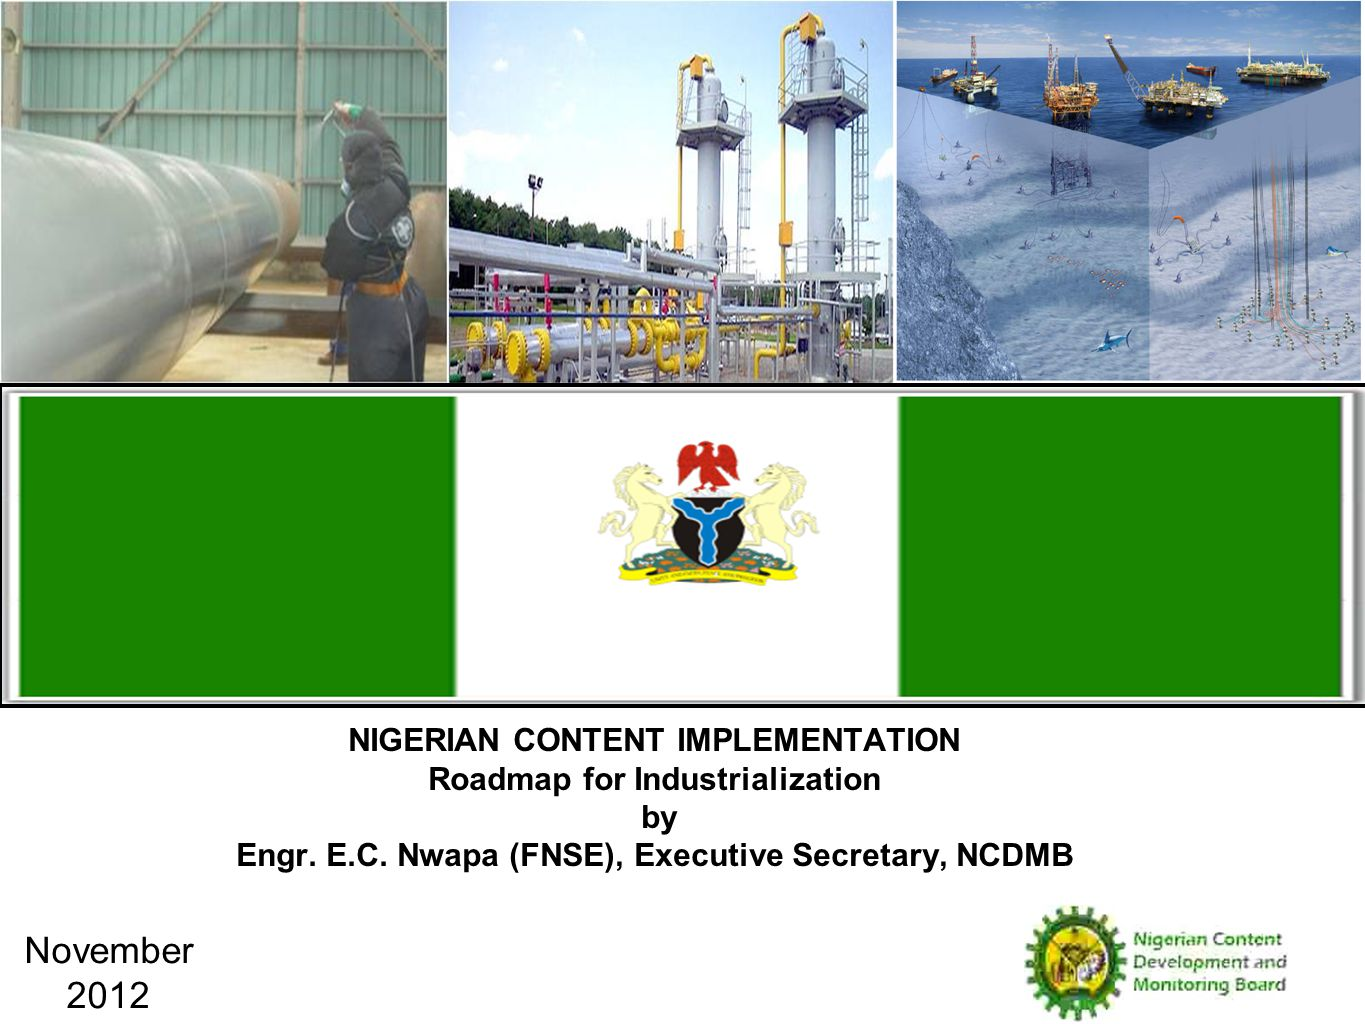 HISTORIC TREND OF NIGERIAN OIL & GAS SECTOR PERIOD1960s – 1970s1980s – 1990s2000s – 2010s2020 POPULATION63 million100 million165 million195 million EDUCATED EMPLOYABLE ADULTS <5%10%30%>50% COMMUNITY DEMANDS InsignificantBasic AmenitiesInfrastructure Participation Equity ownership REVENUE20%50%80%> 60% GDP IMPACT (Contribution) <10%<20%>20% LAWS & POLICIES Petroleum ActJOAs, PSCsNOGICD/ PIB